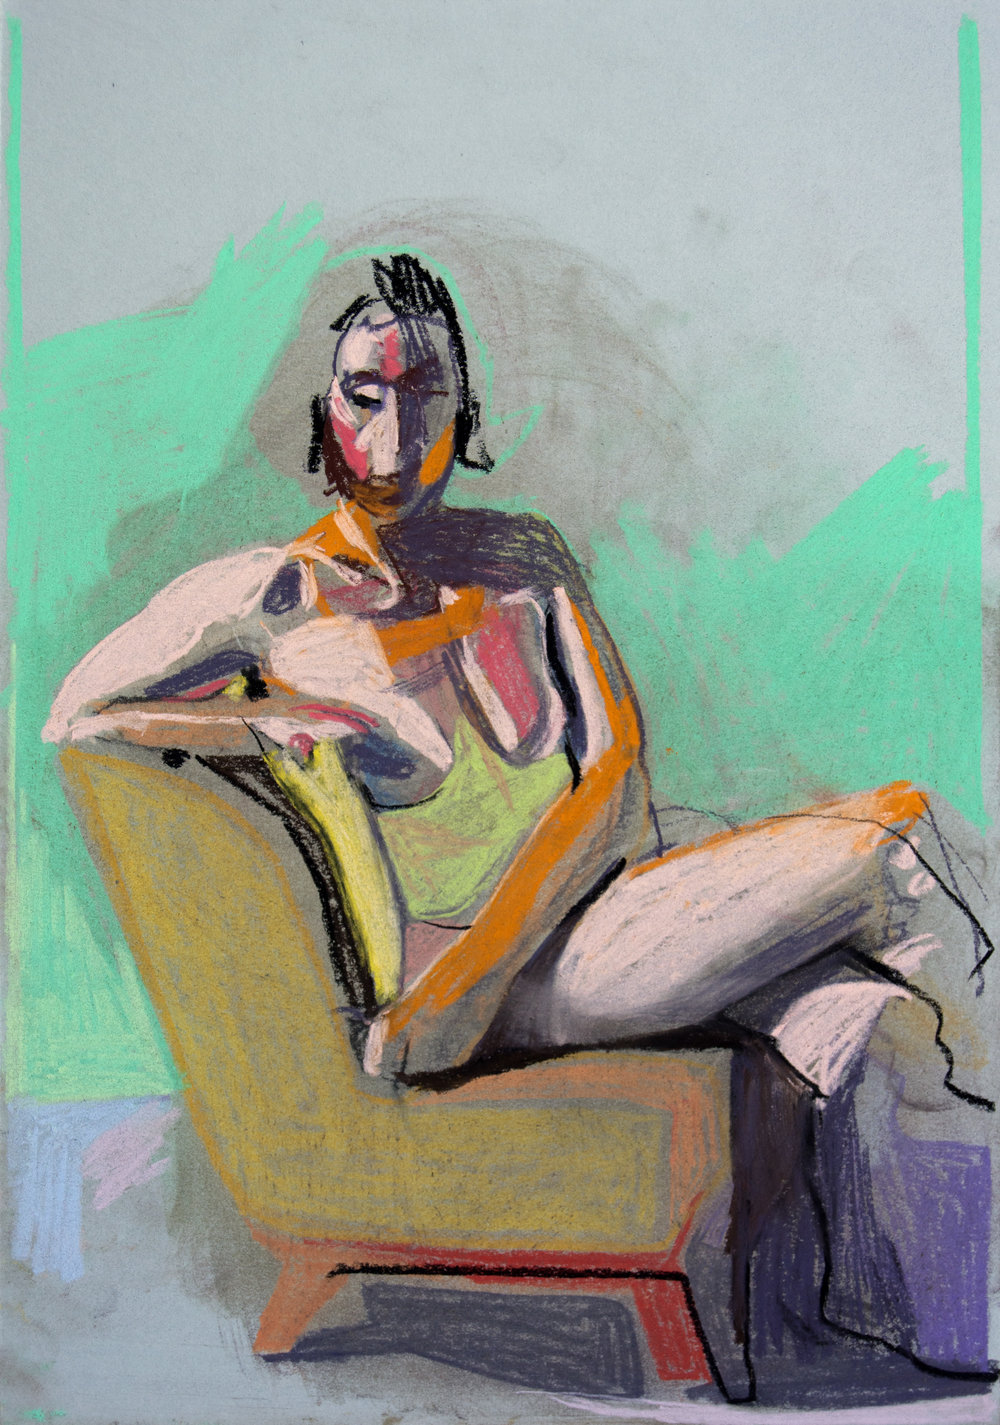 'Nude on grey with green wall', 2018, pastel, 29.8 x 20.8cm, SOLD